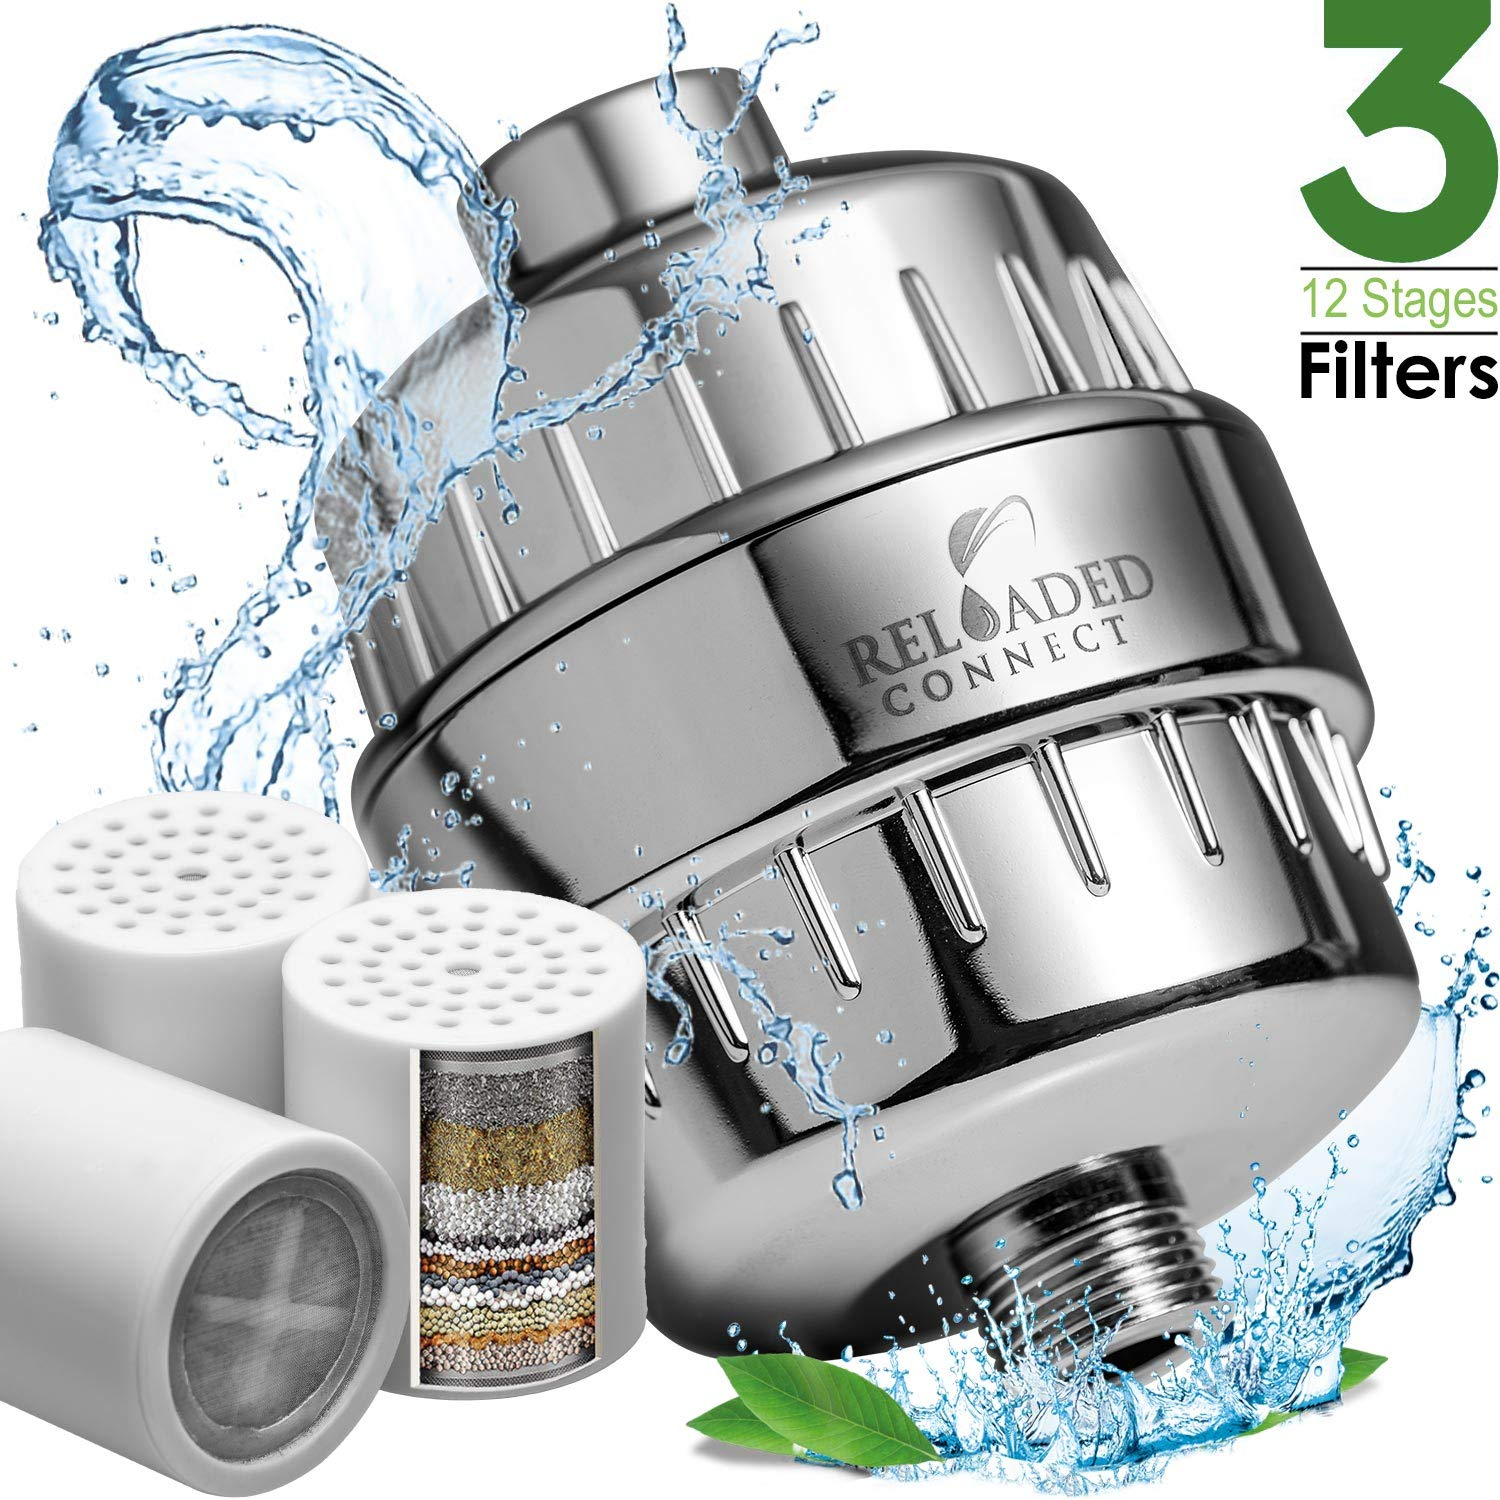 Shower Filter with Vitamin C For Hard Water - 3 Cartridges Included Shower Filters Removes Chlorine Fluoride and Harmful Substances - Showerhead Filter with High Output by Reloadedconnect